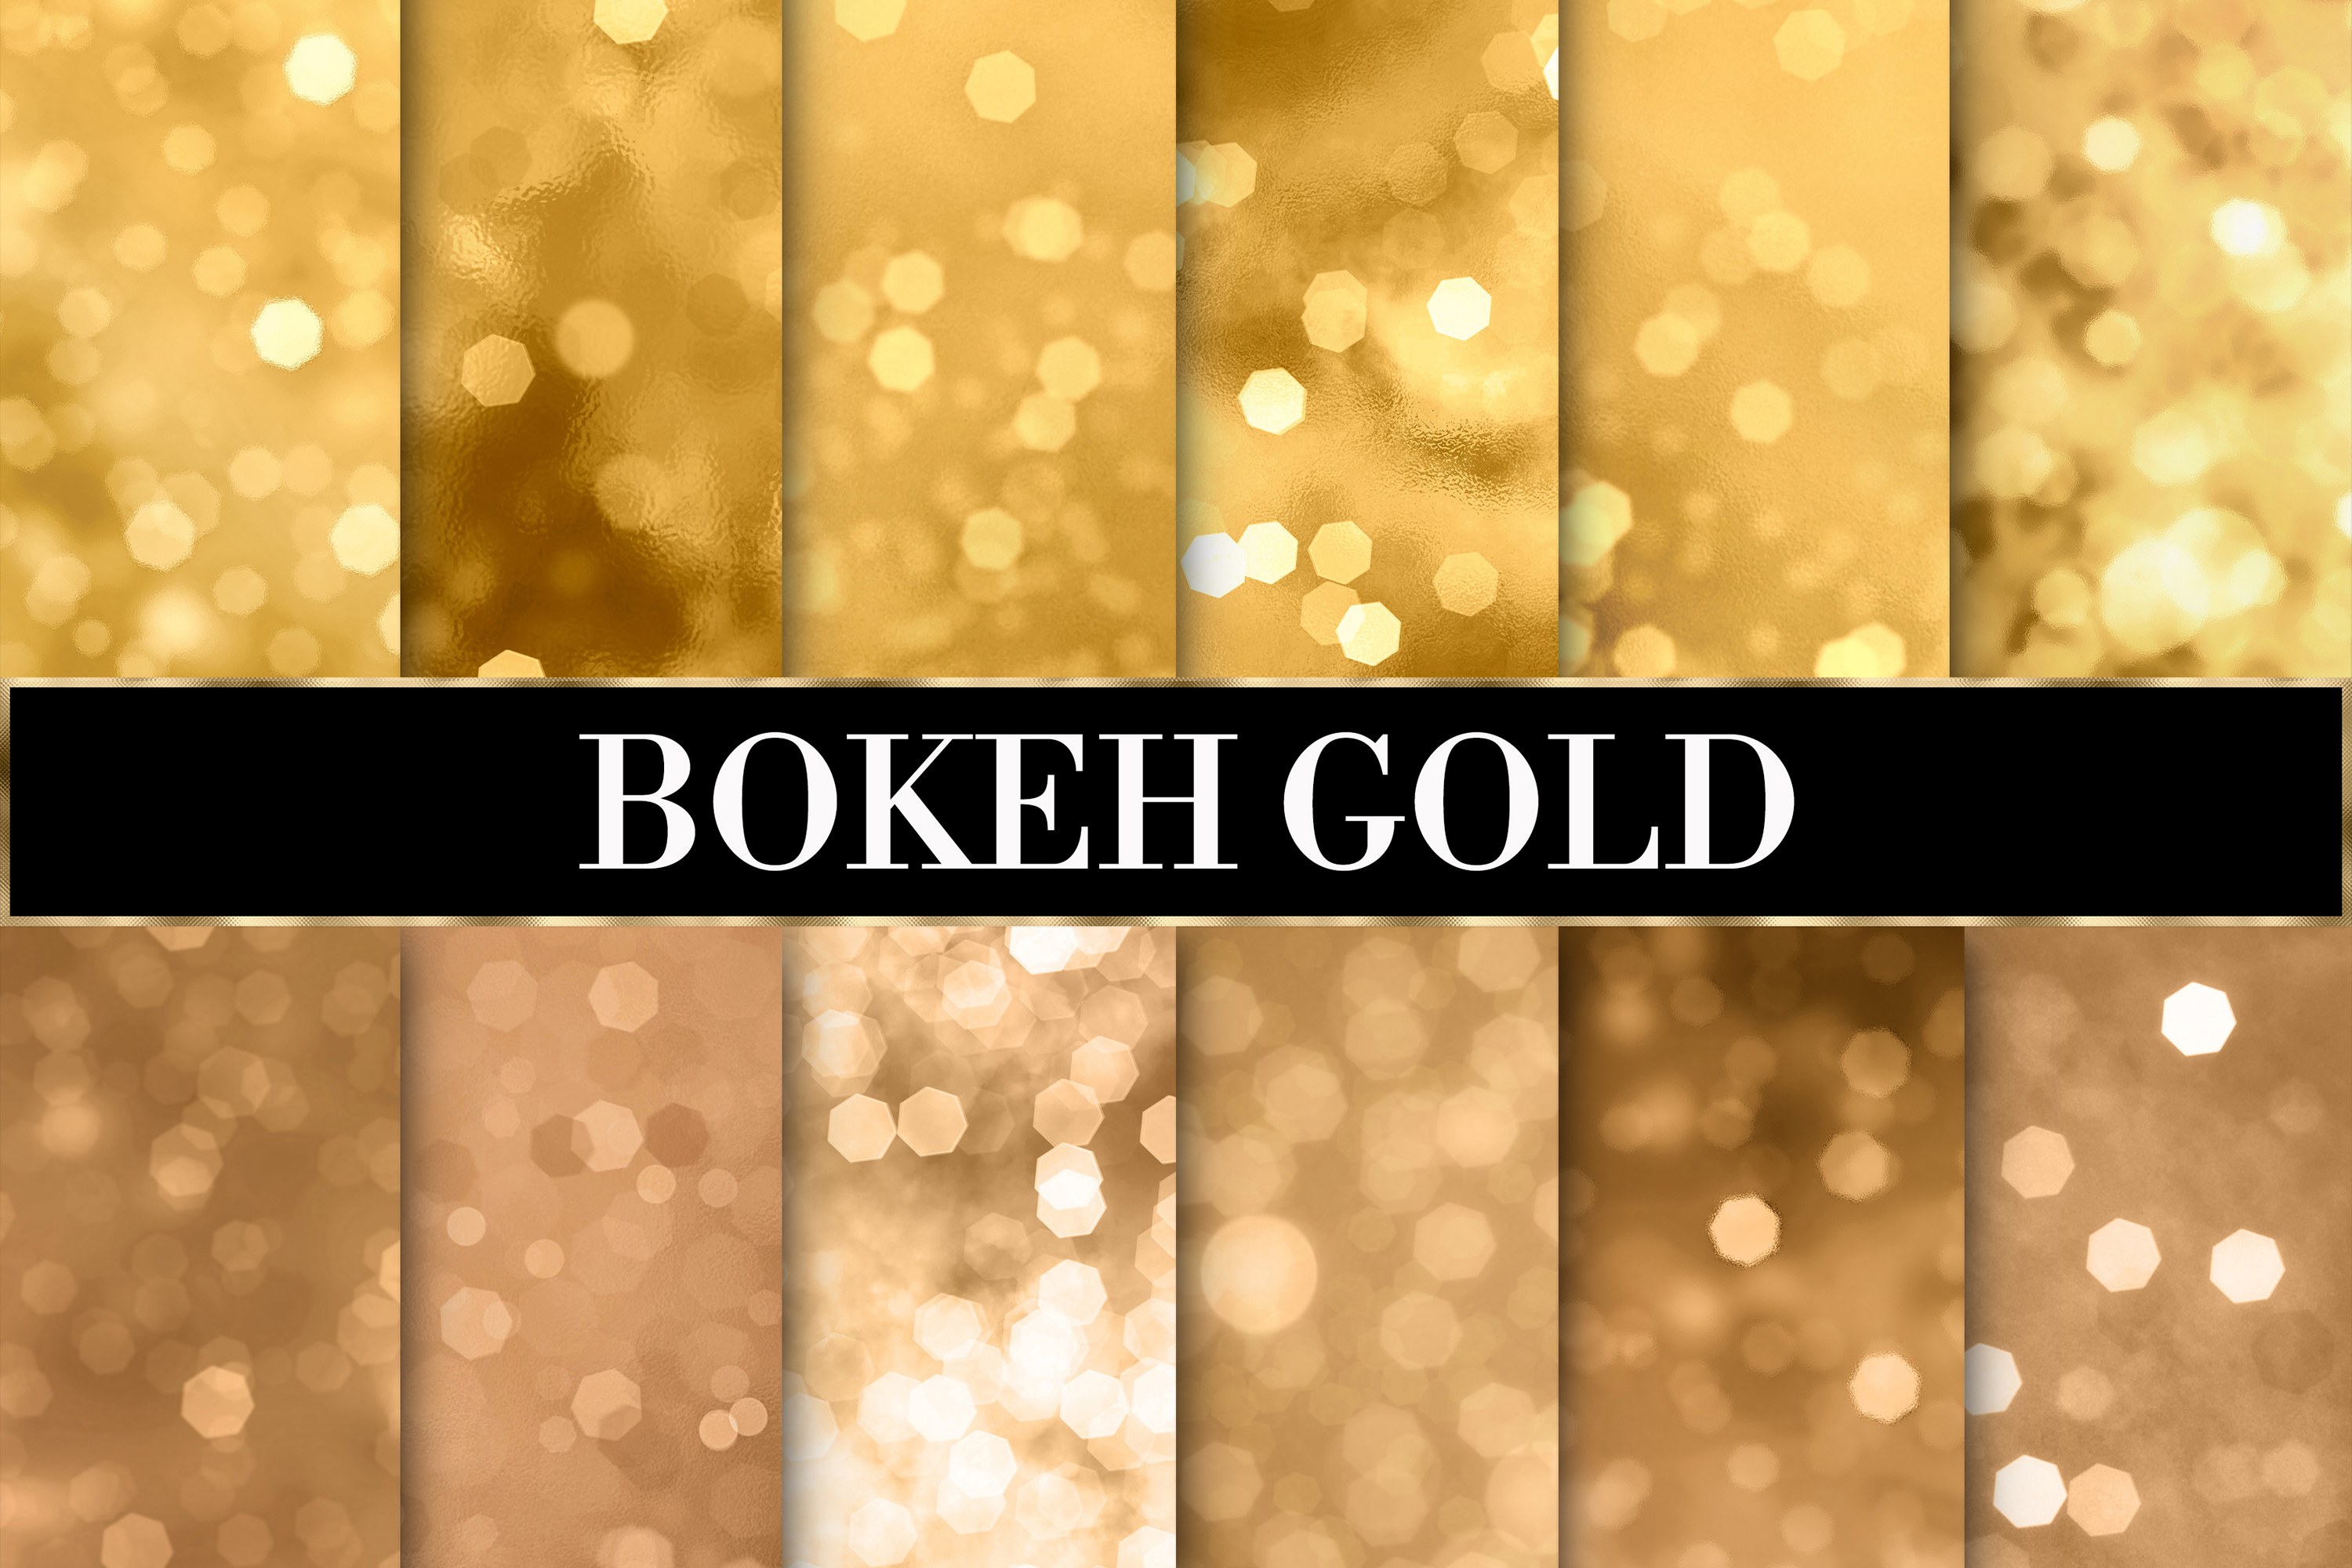 Bokeh gold overlays high resolutions example image 1